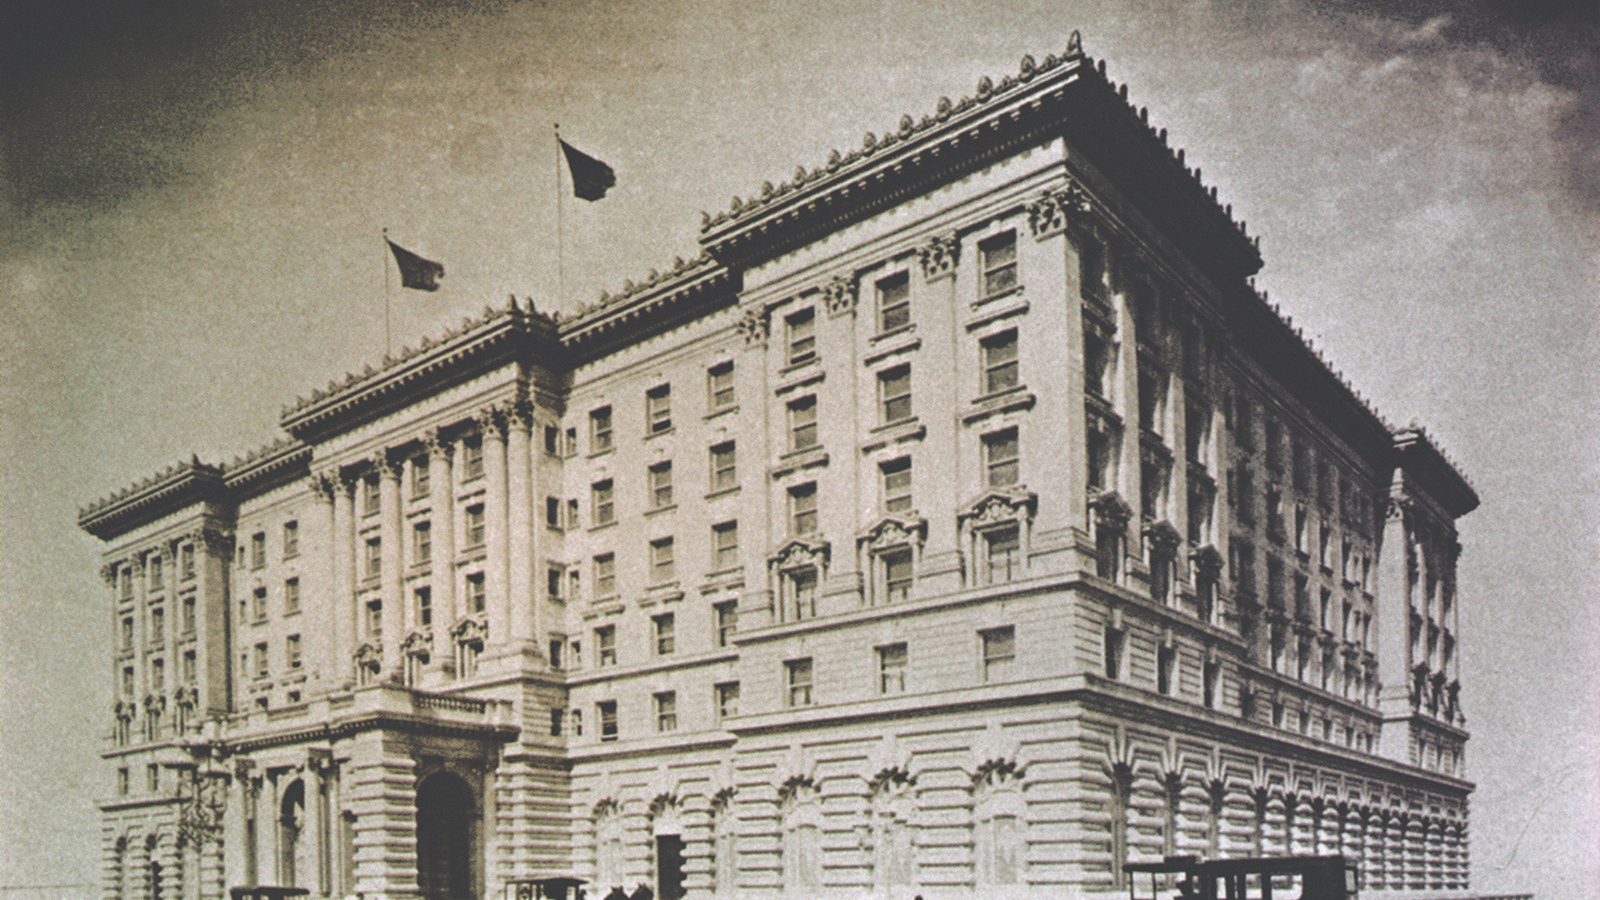 Historical Image of Exterior with Historic Automobiles, The Fairmont Hotel San Francisco, 1907, Member of Historic Hotels of America, in San Francisco, California.